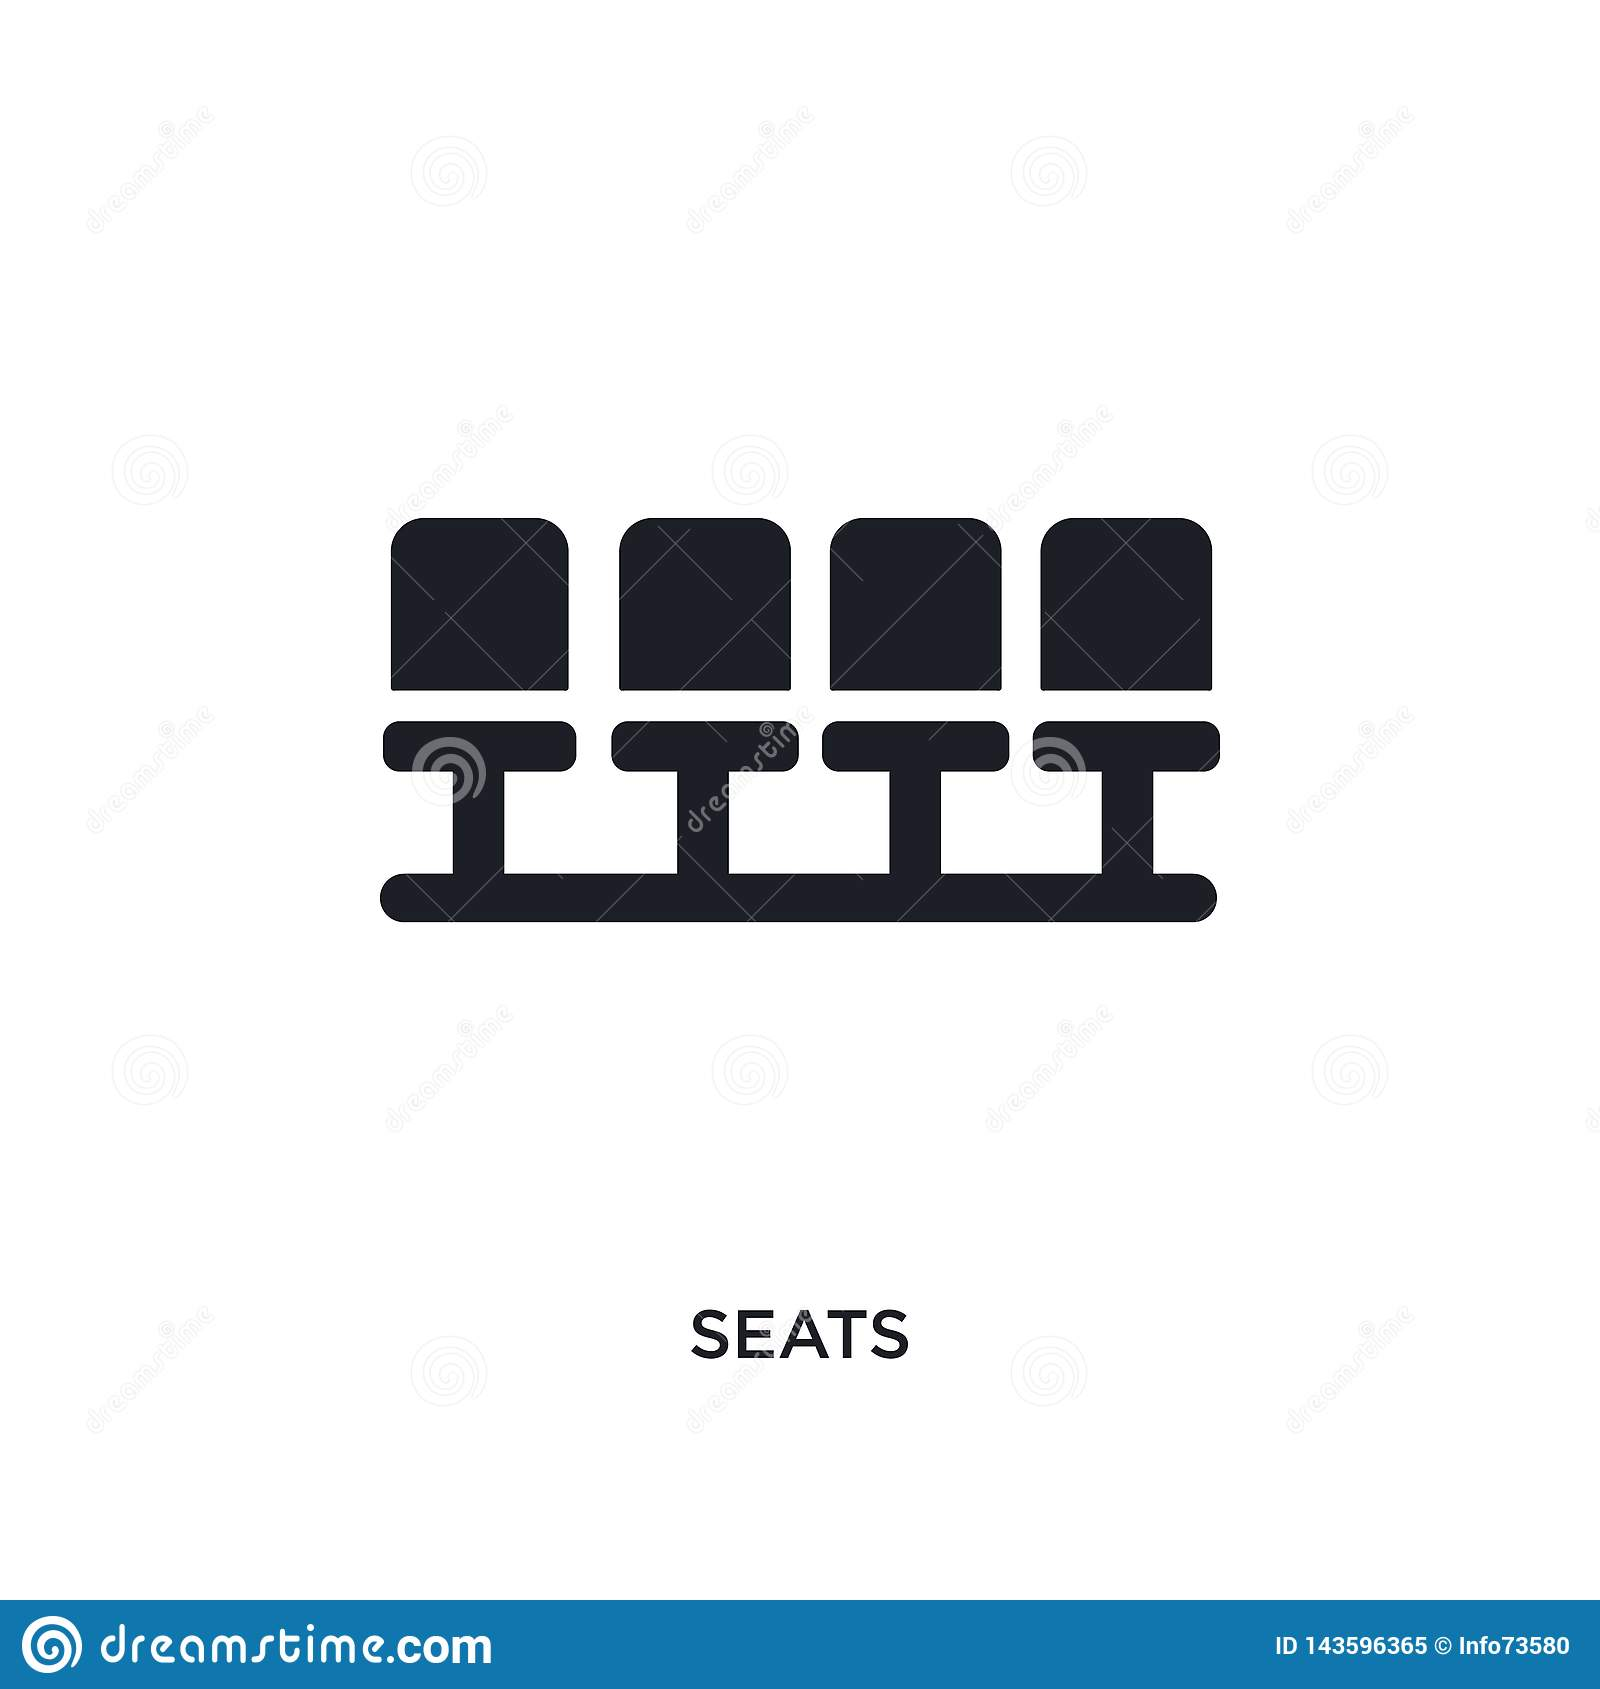 black seats isolated vector icon. simple element illustration from football concept vector icons. seats editable black logo symbol